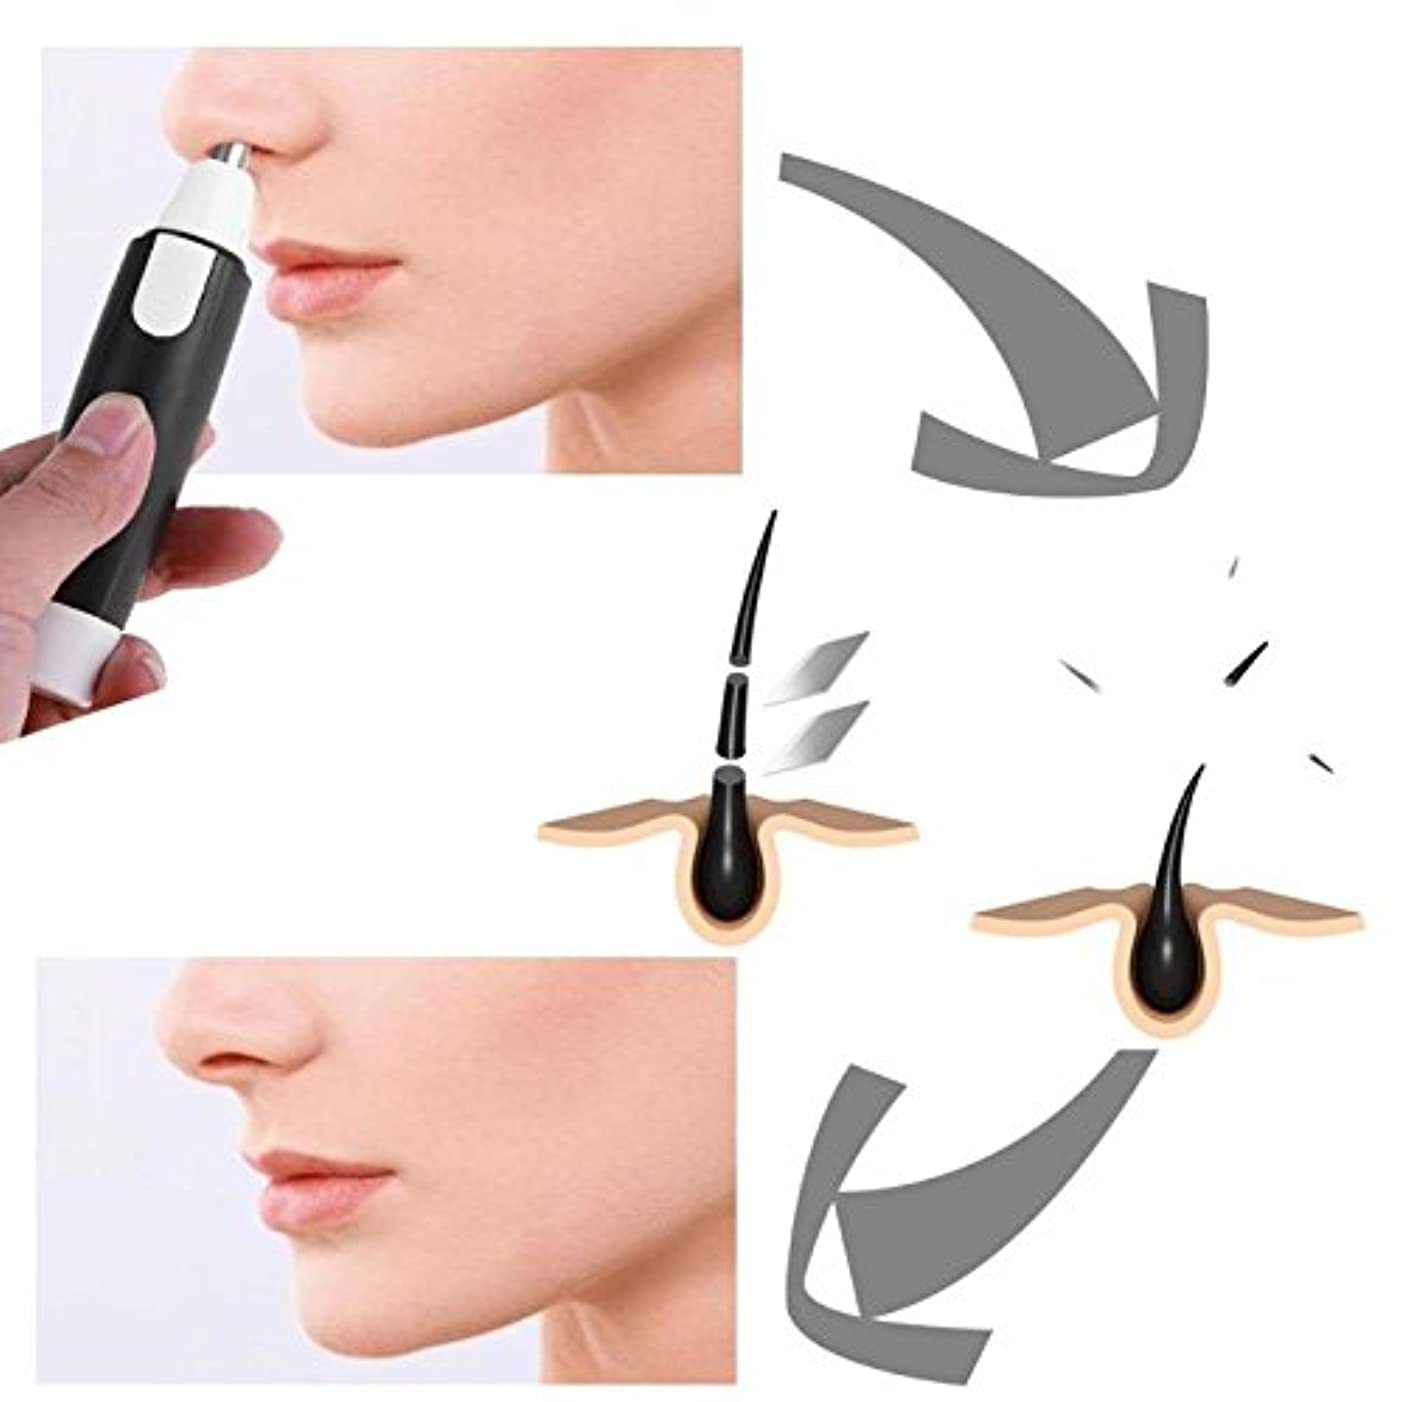 分割趣味プラットフォームElectric Shaver Men Nose Face Care Hair Removal Trimmer Cleaner Tool Nasal Wool Implement Nose Hair Cut For Men...